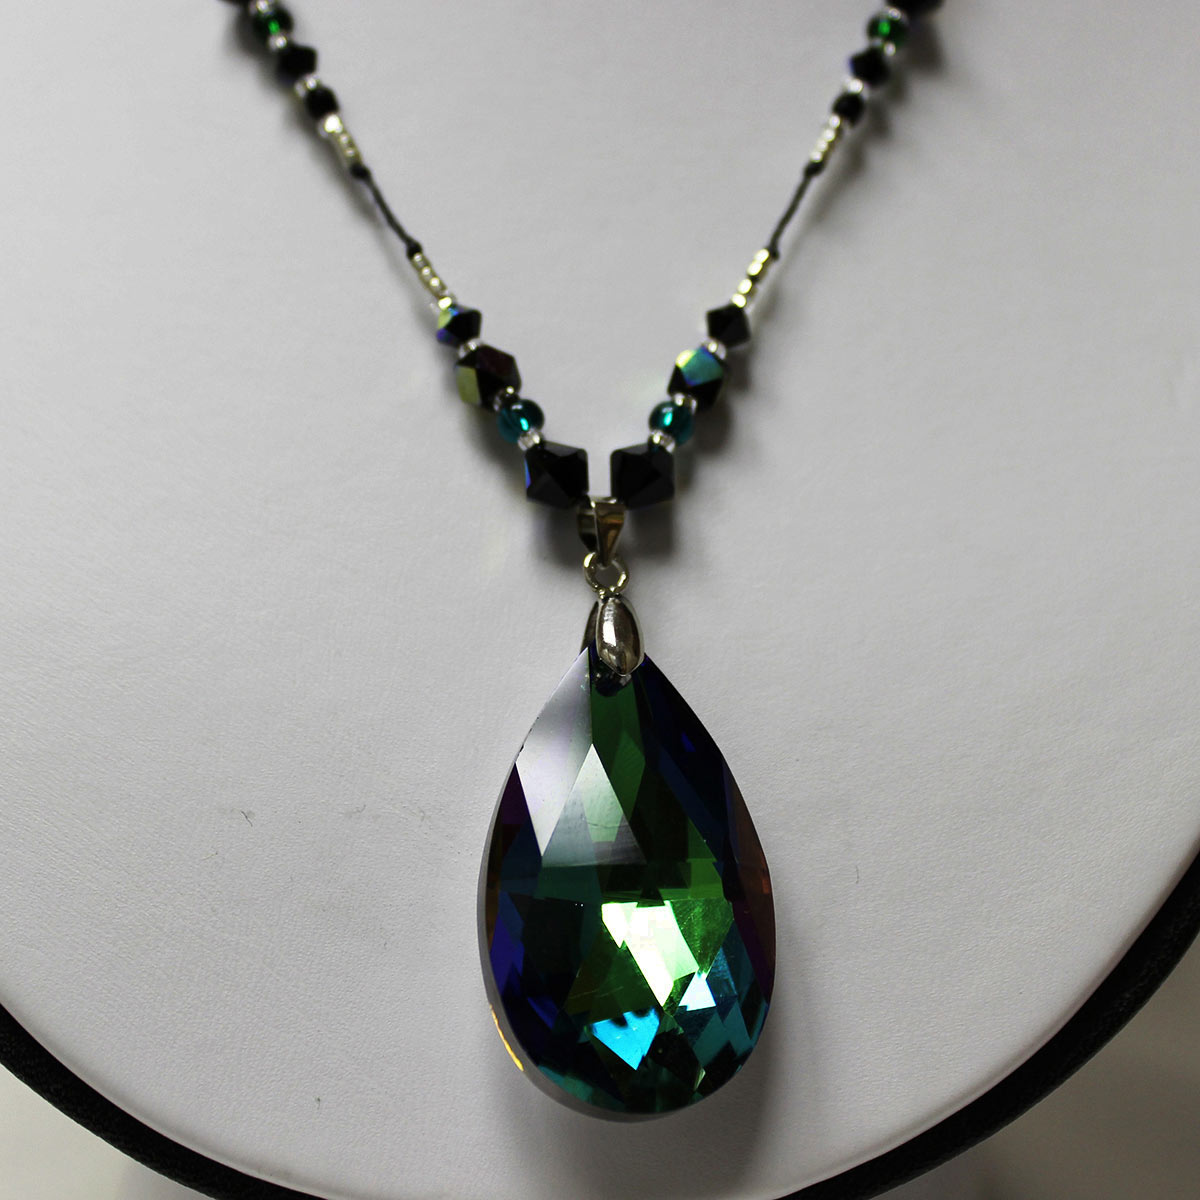 handmade statement necklace, prism bead, emerald beads, black crystal beads